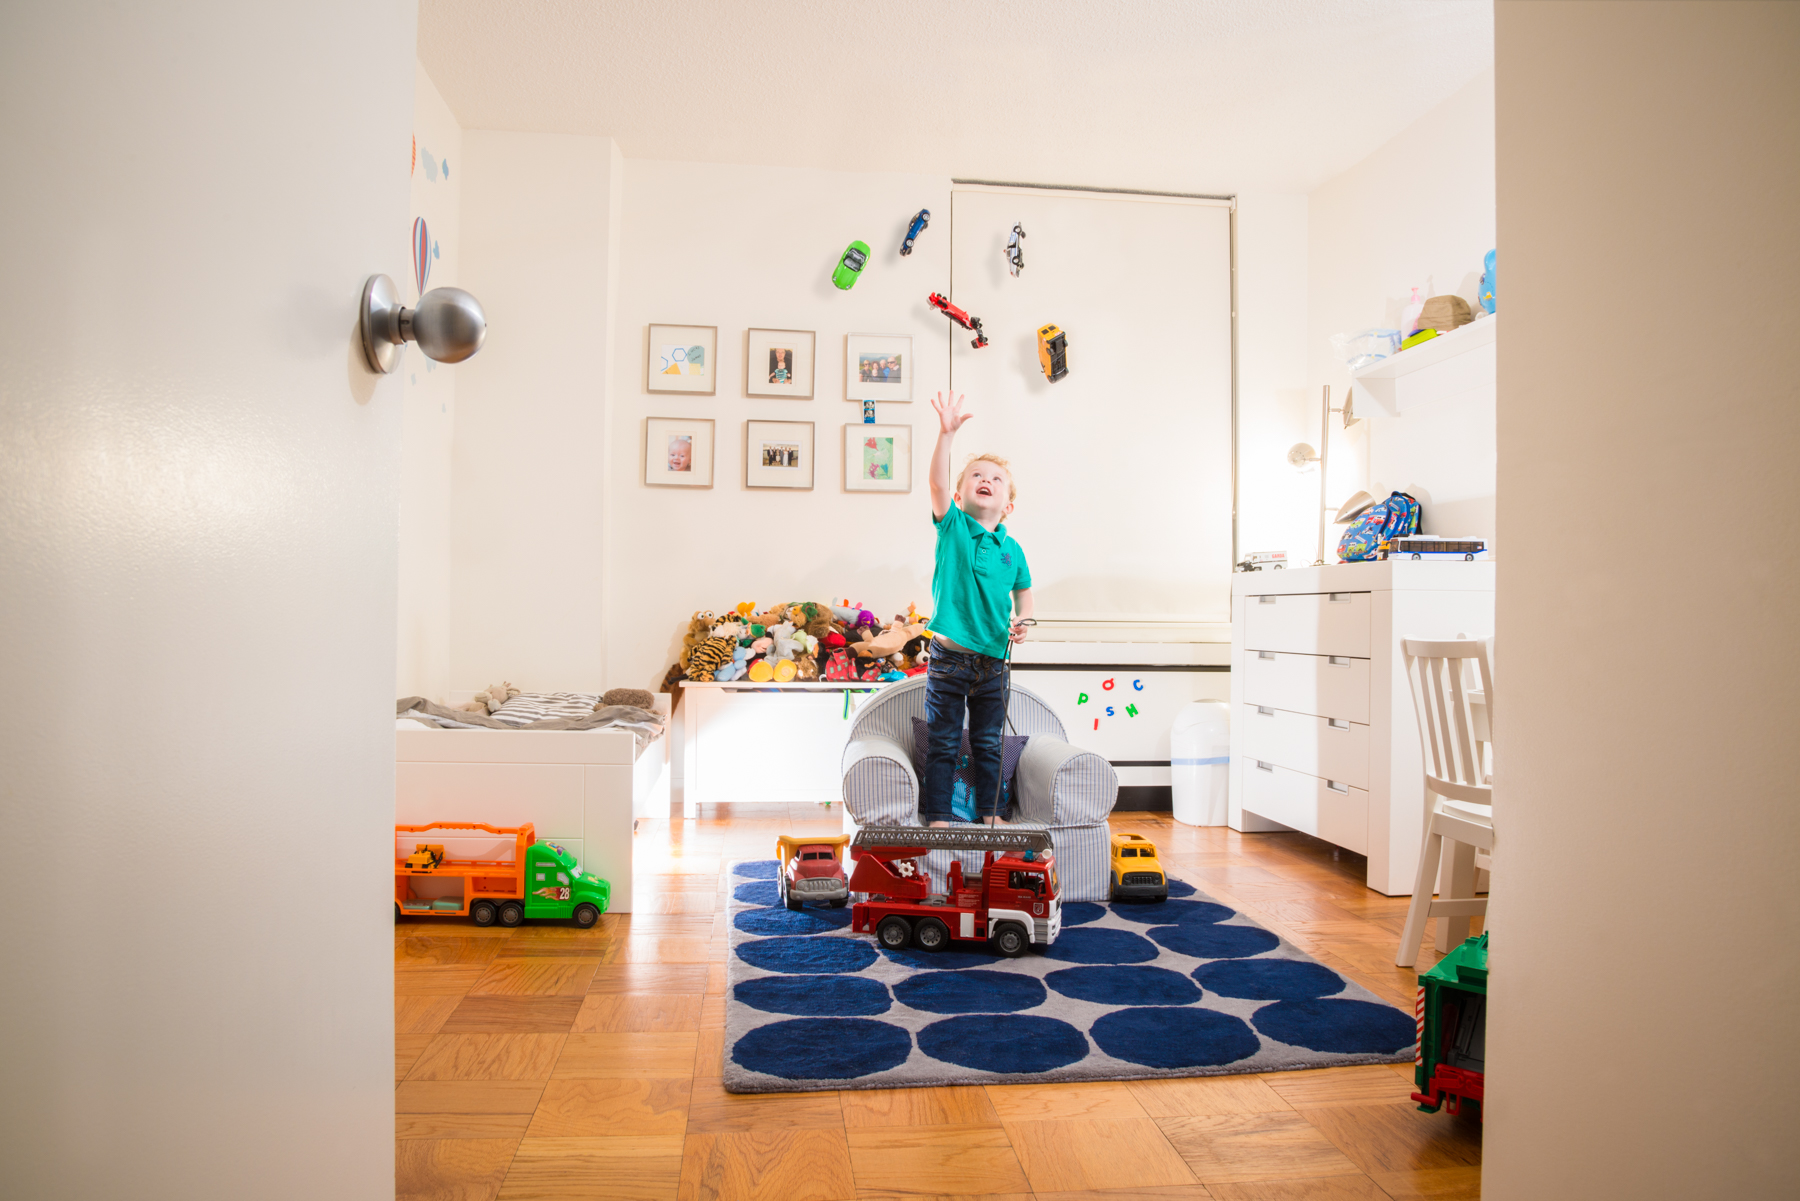 I love this fantasy shoot I did for an amazing family in New York City. Lucas is, a 3 year oldobsessed with trucks. To capture this stage in his life Icreating a sneak peek into a magical fantasy land in his room where gravity was suspended and the wonder of life was explored.